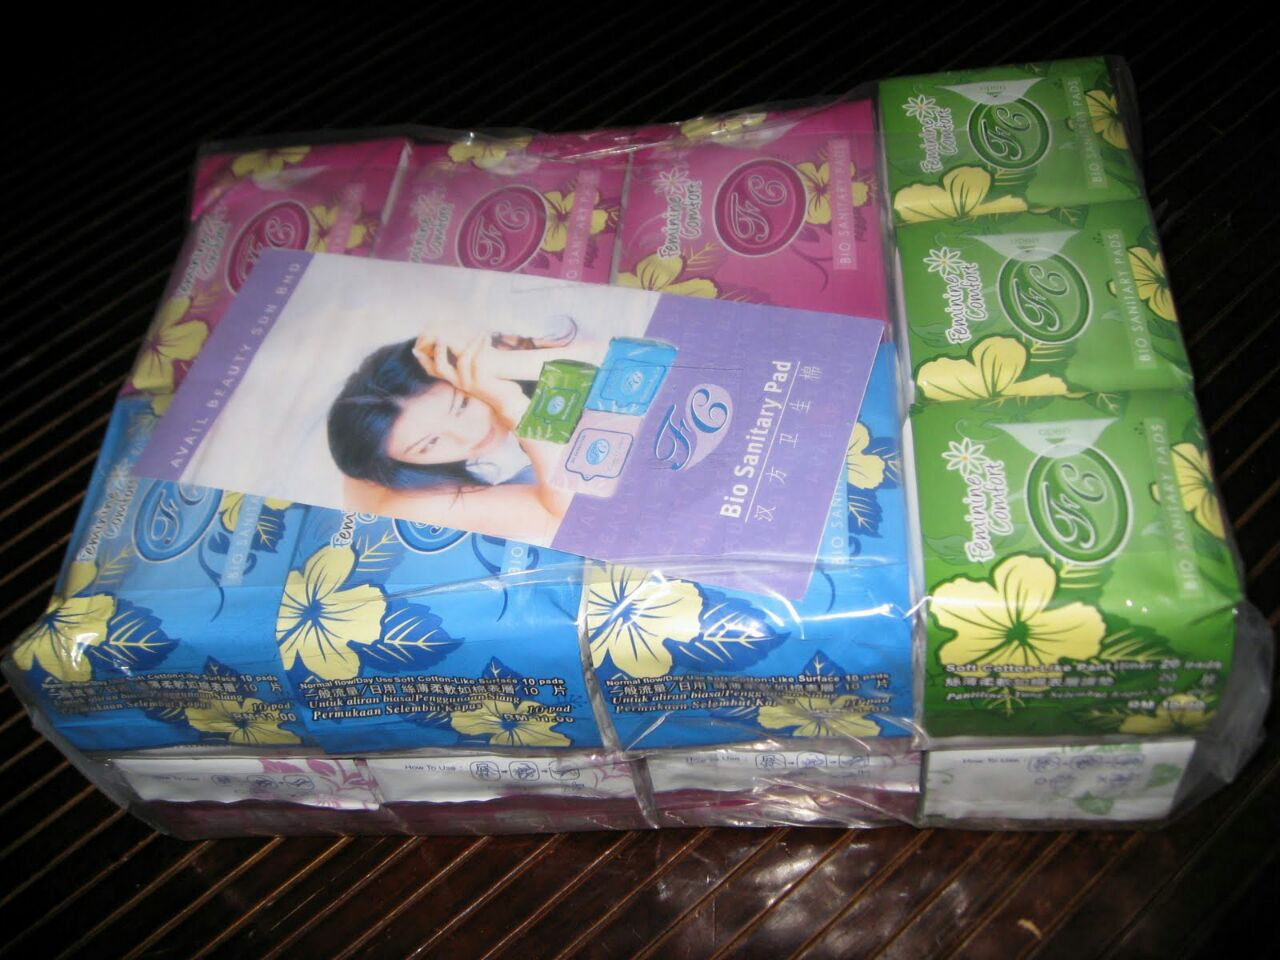 Greenetable Avail Fc Bio Sanitary Pad Pentiliner Combination